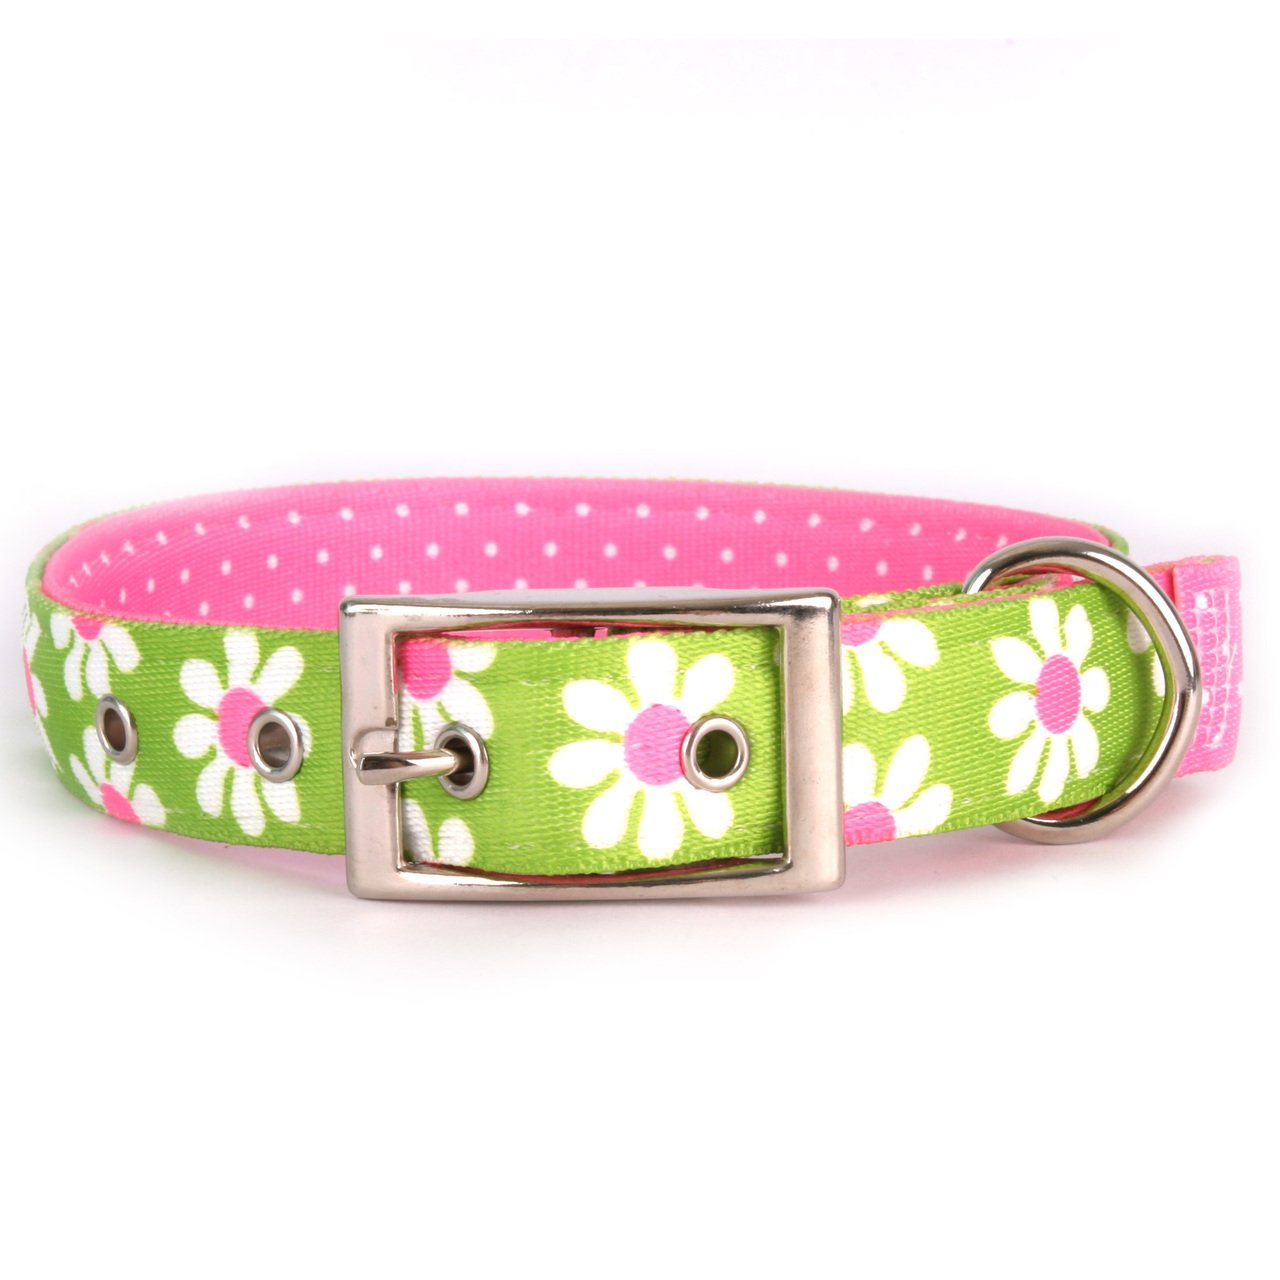 Yellow Dog Design Green Daisy Uptown Dog Collar 1'' Wide and Fits Neck 15 to 18.5'', Medium by Yellow Dog Design